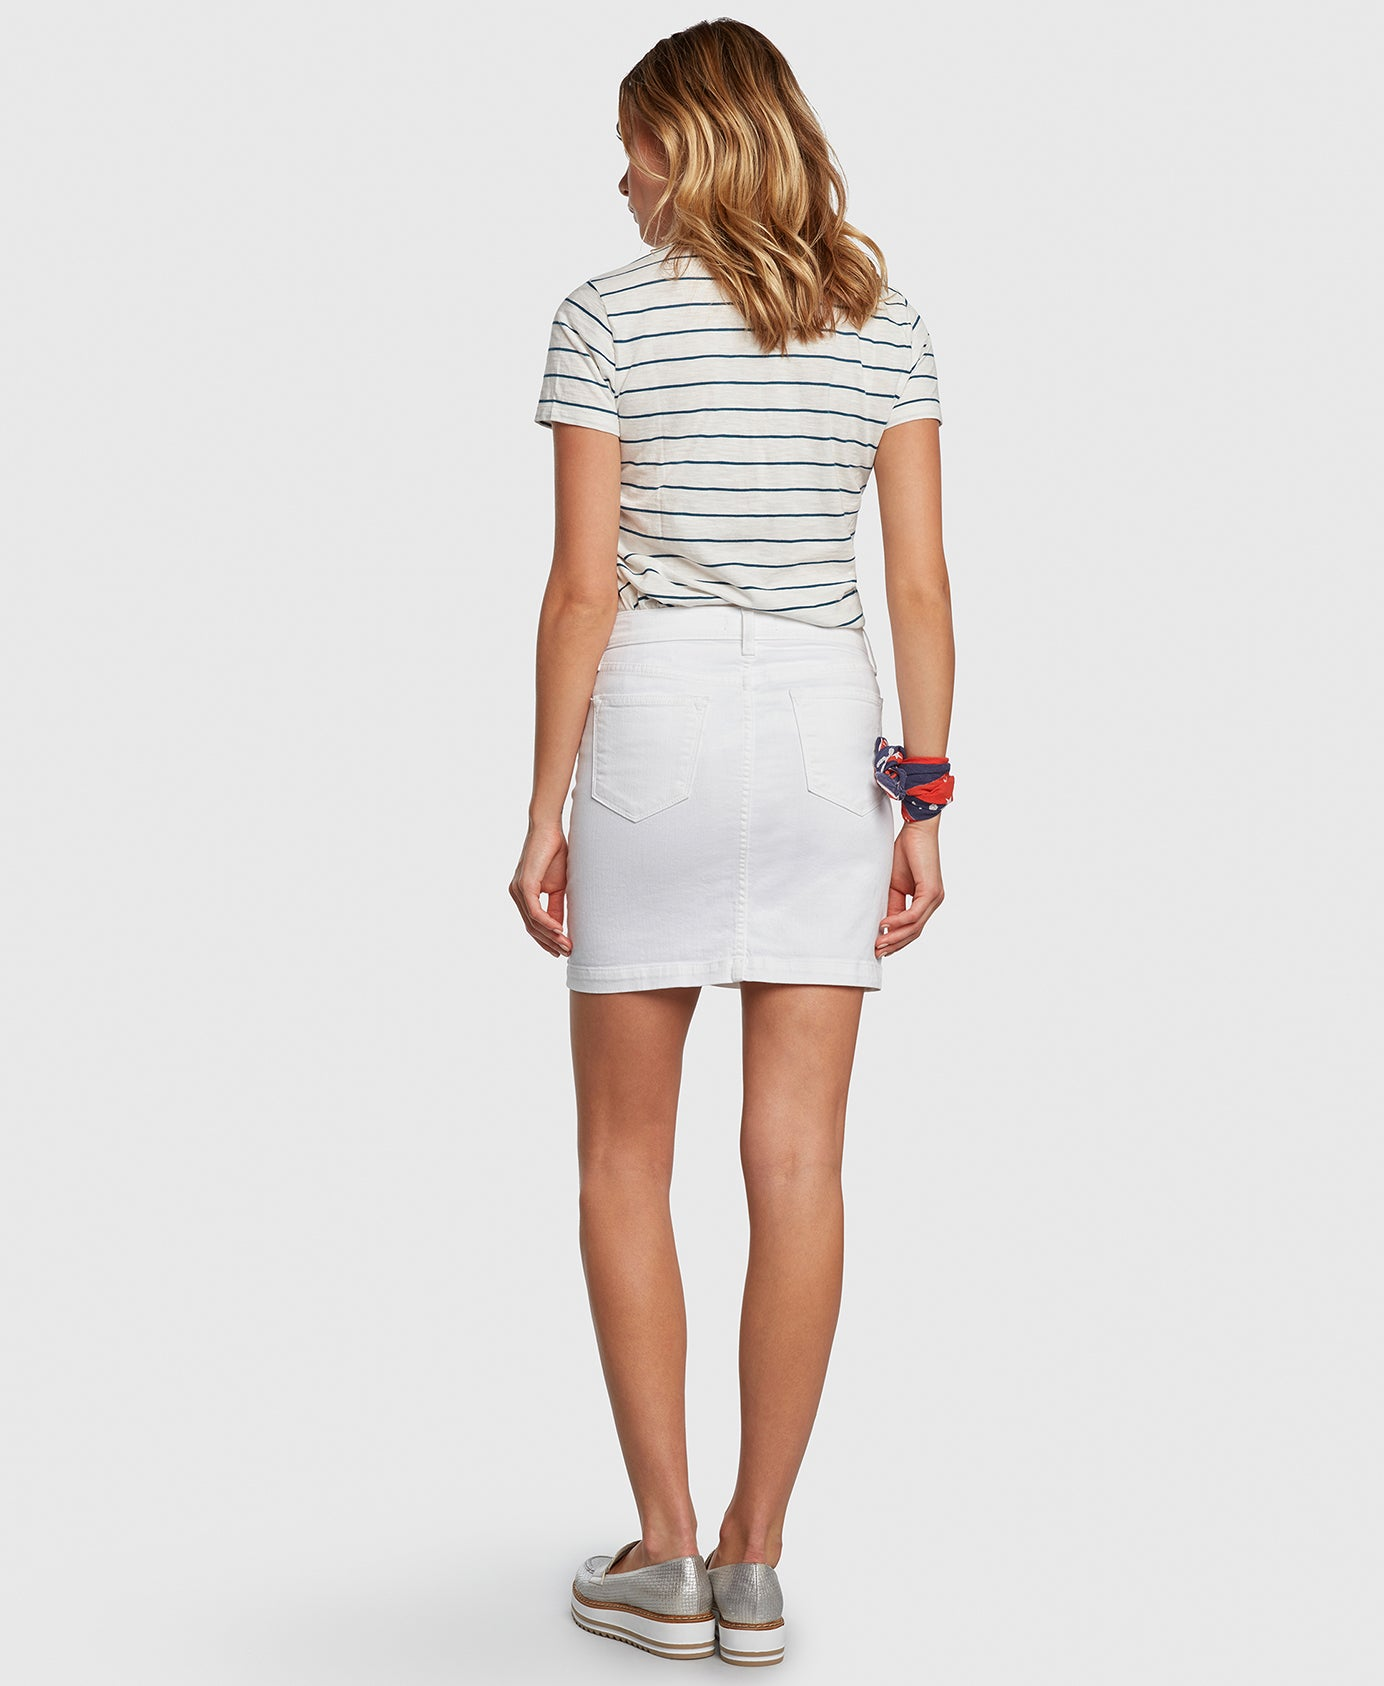 CHARMER in White Principle denim skirt back